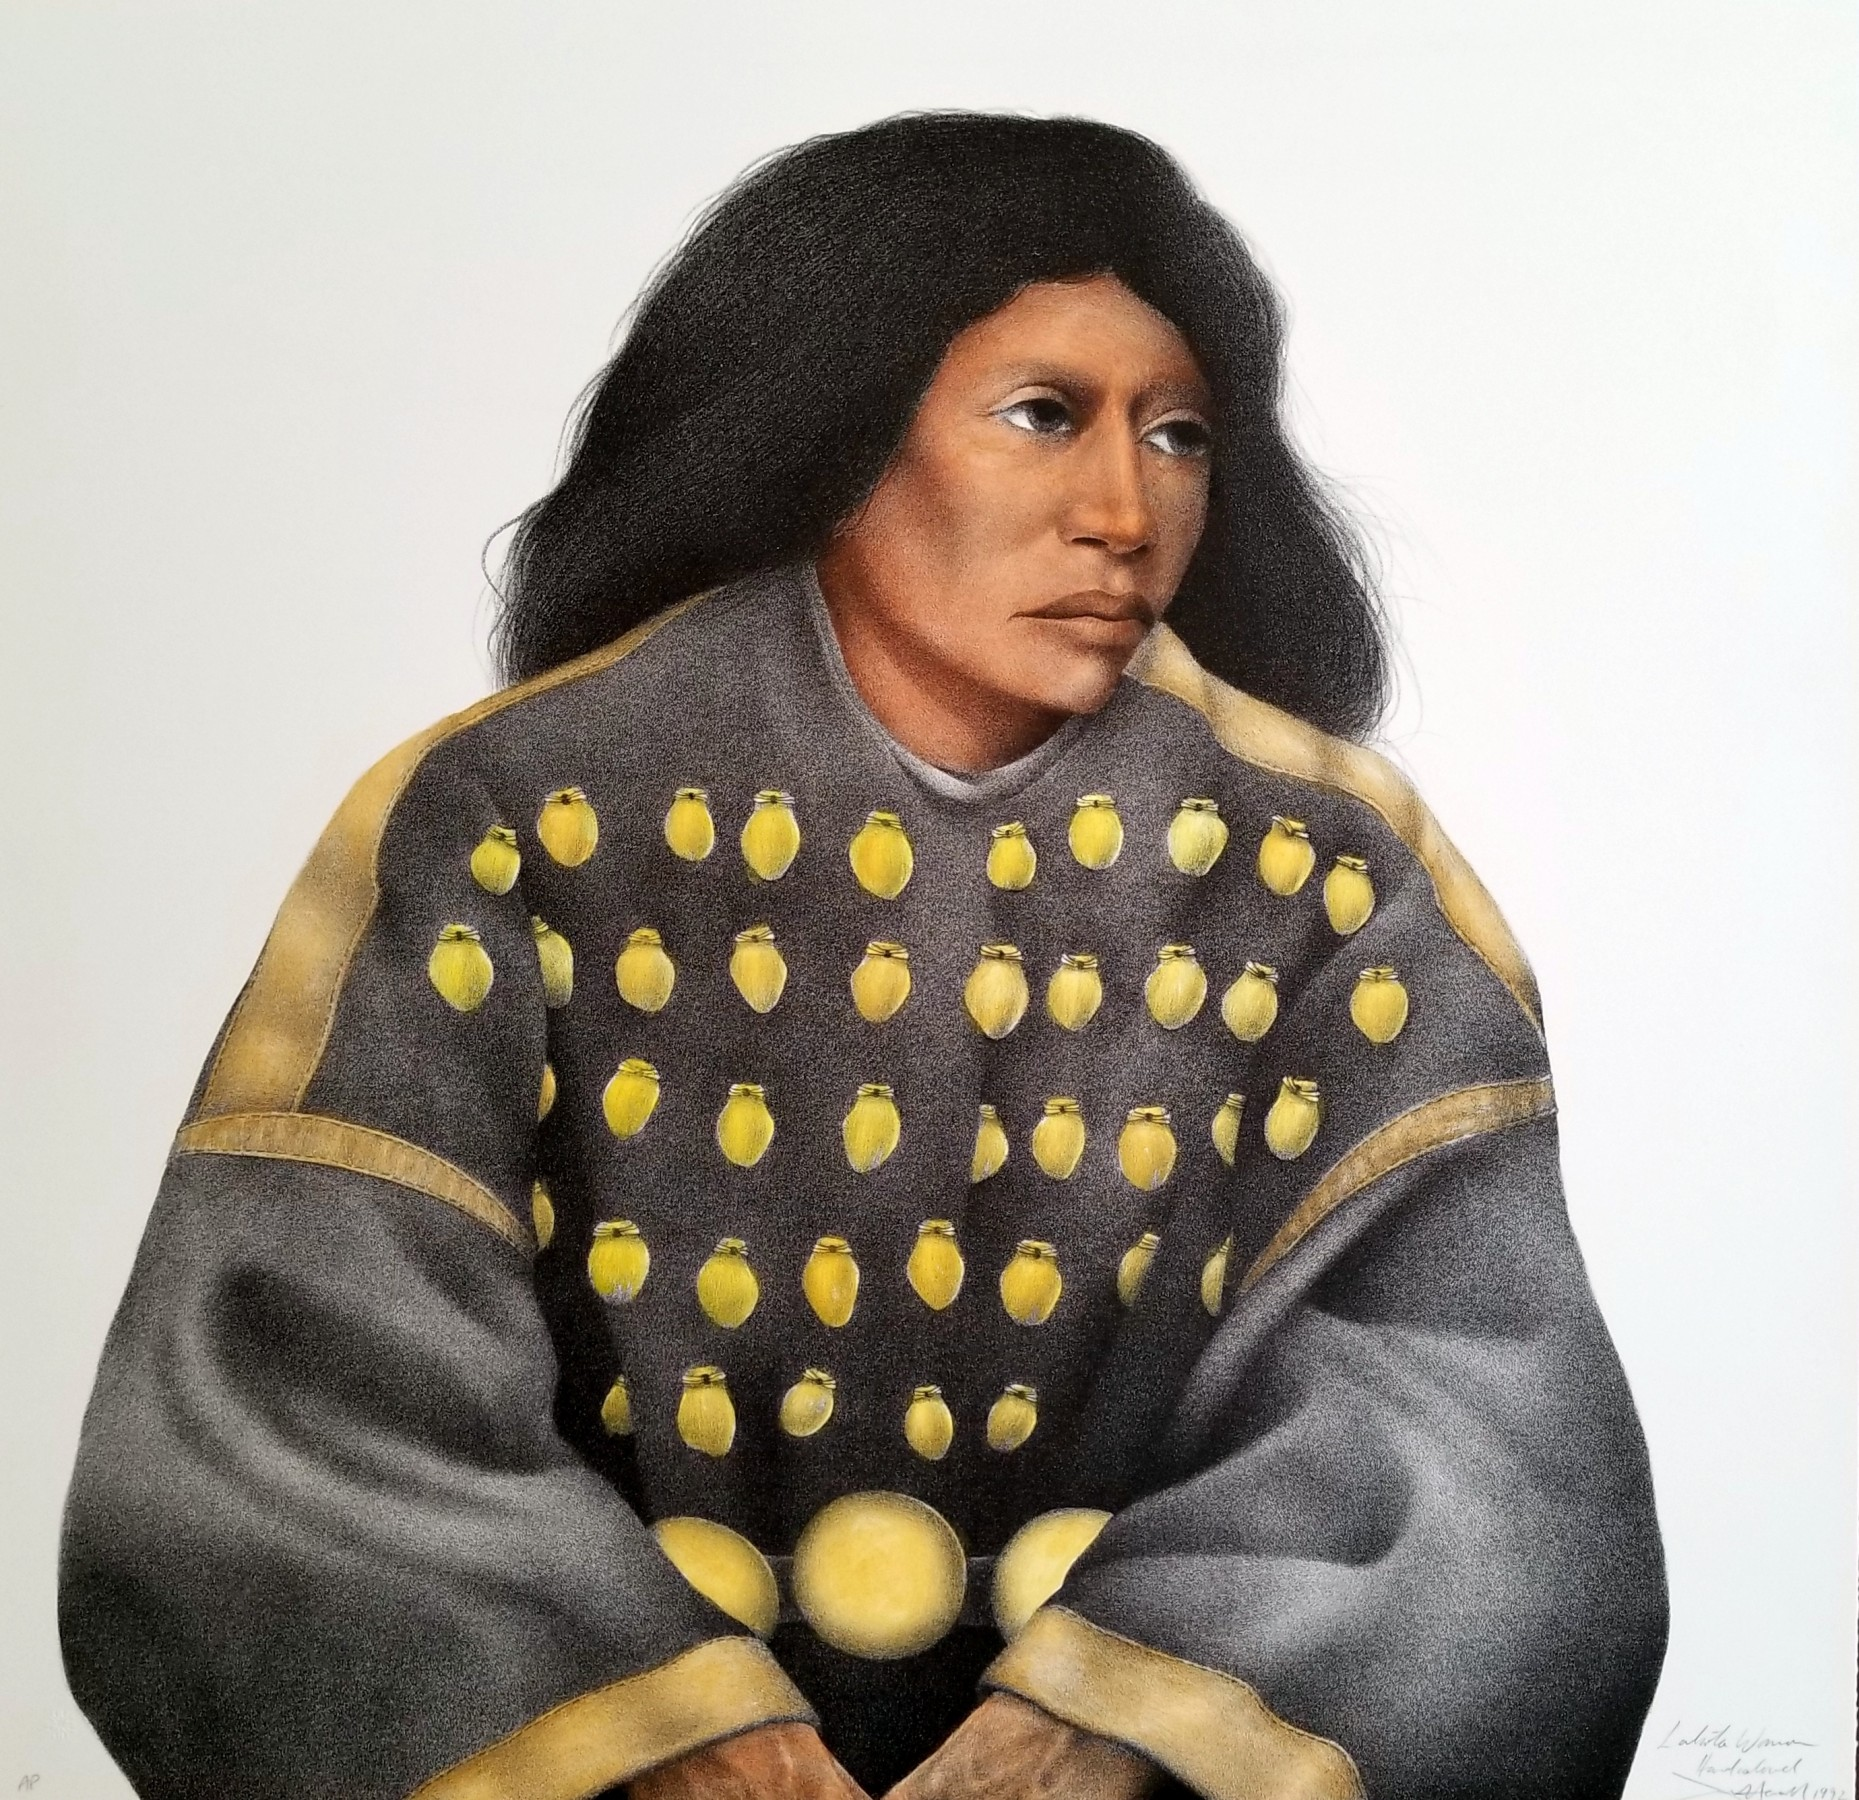 Lakota Woman (Hand Colored) AP 1992 by Frank Howell